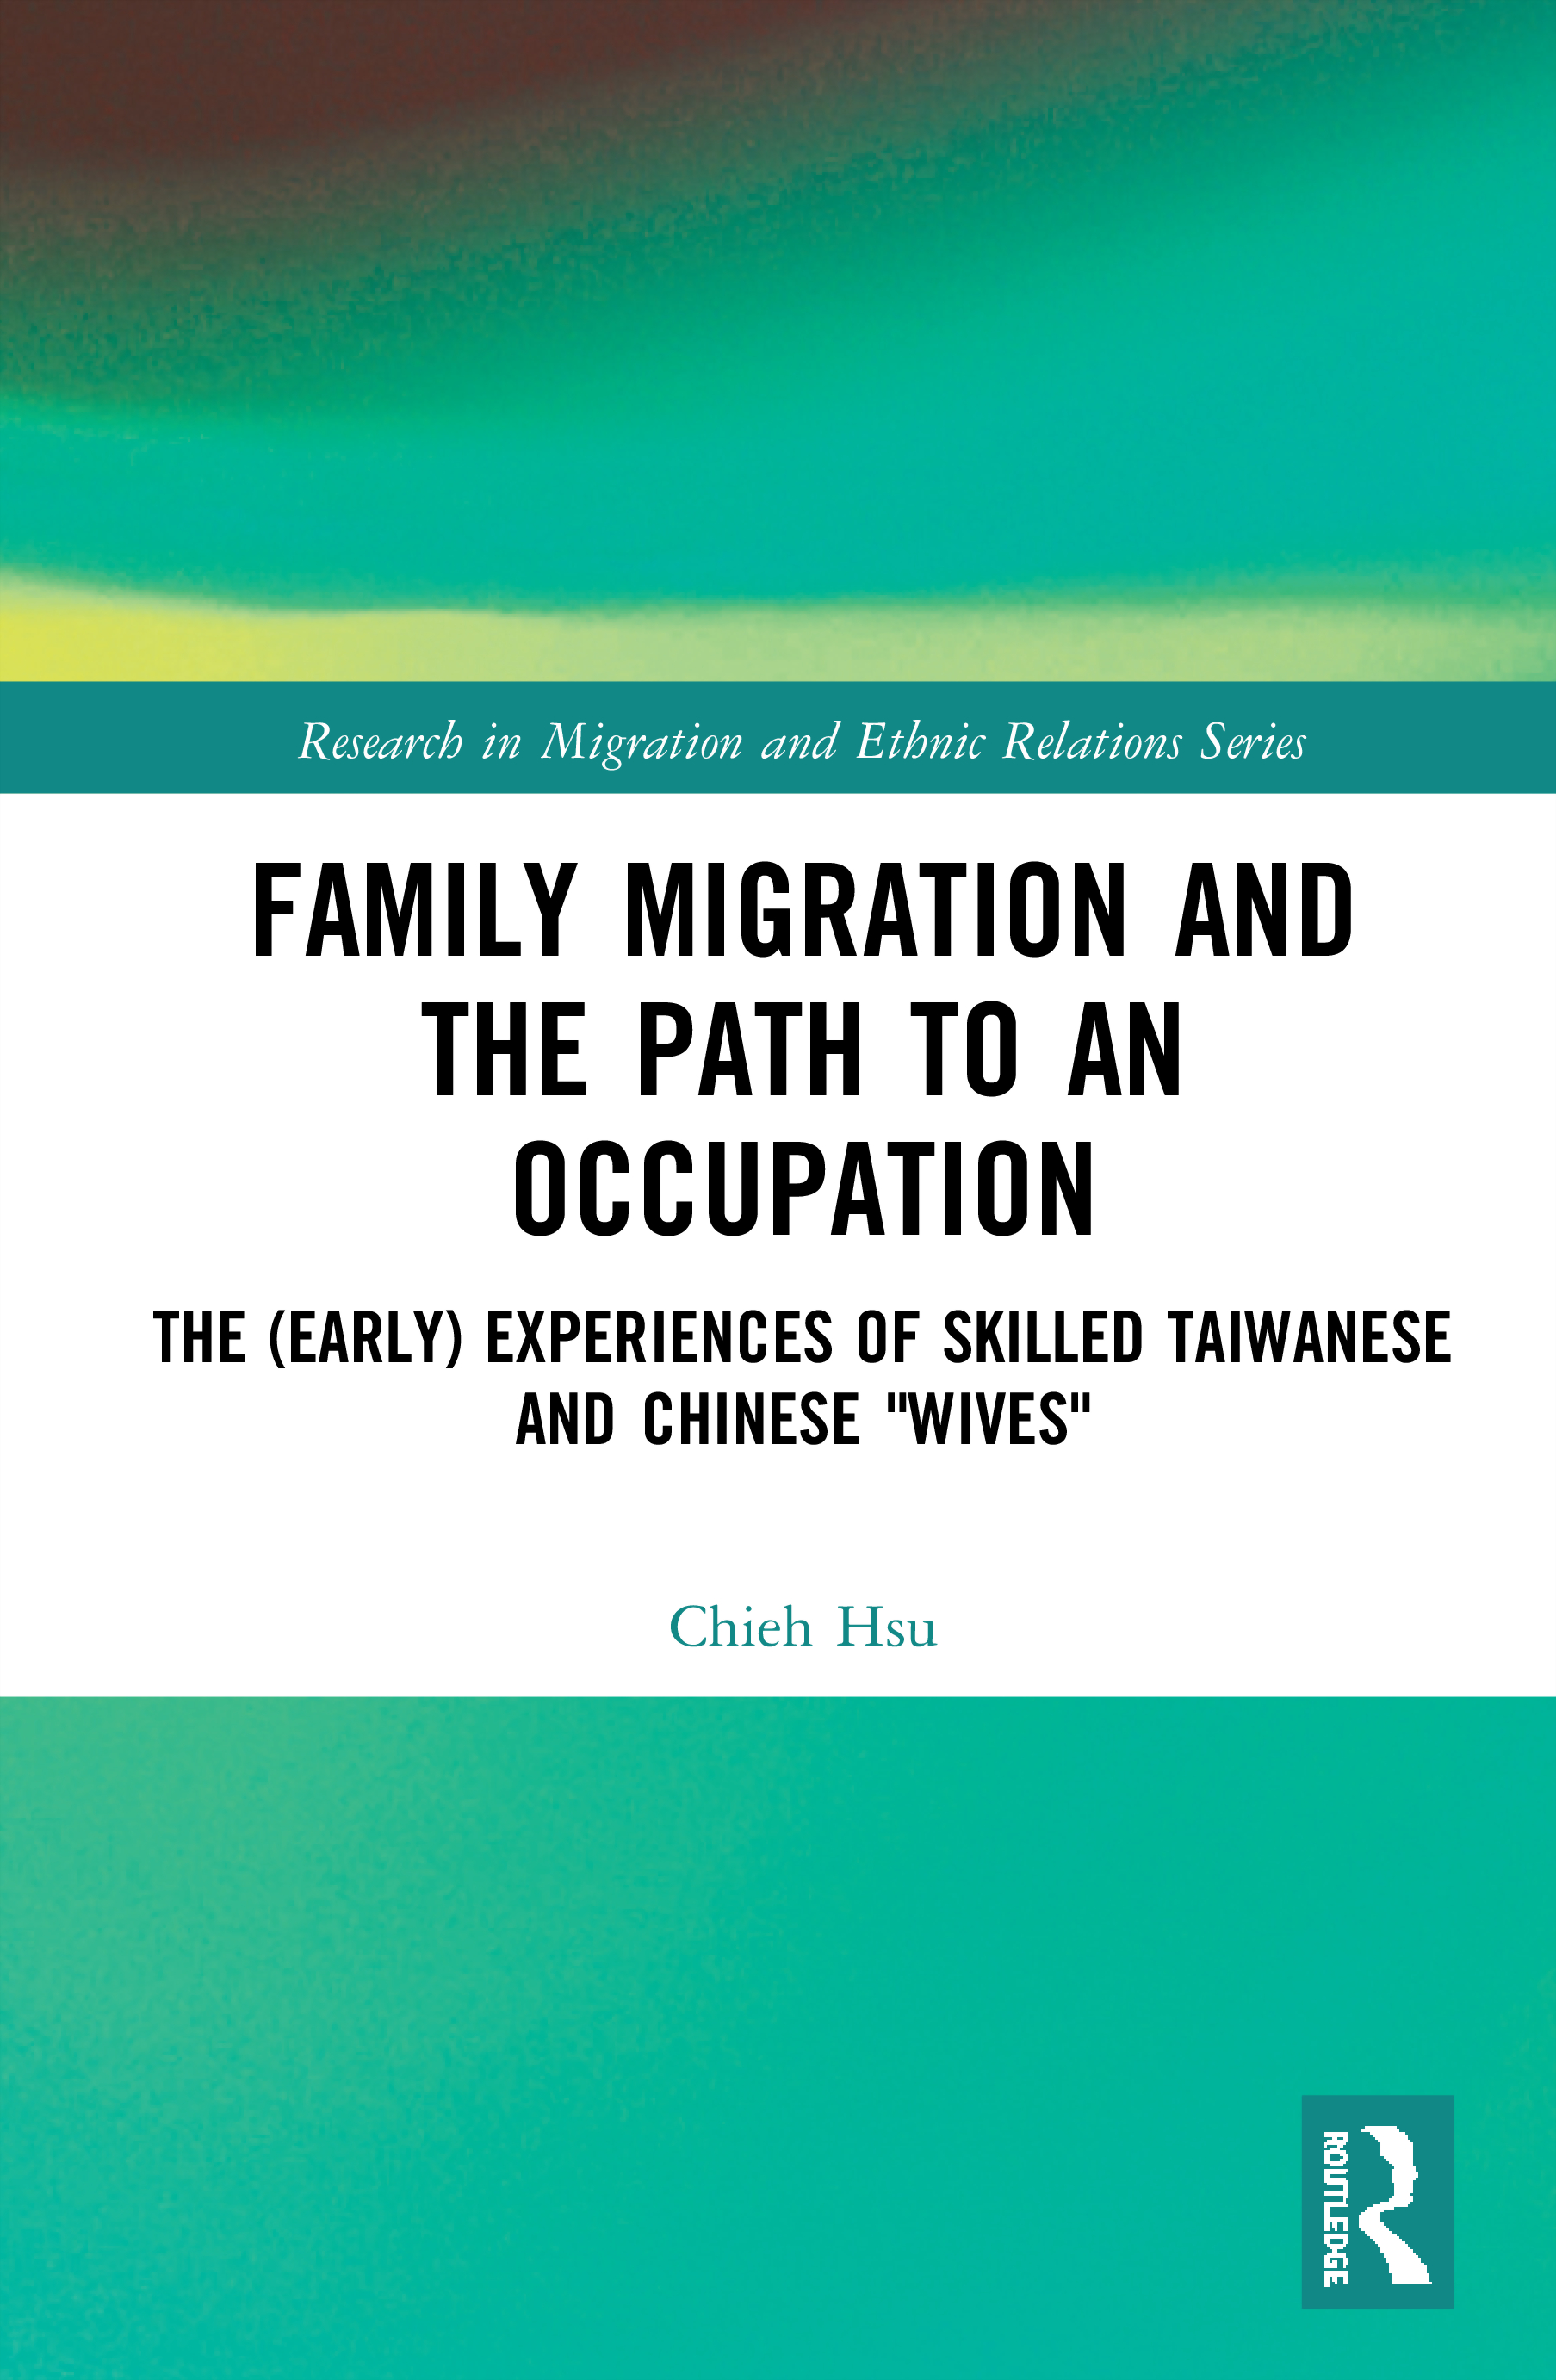 Family Migration and the Path to an Occupation: The (Early) Experiences of Skilled Taiwanese and Chinese 'Wives' book cover